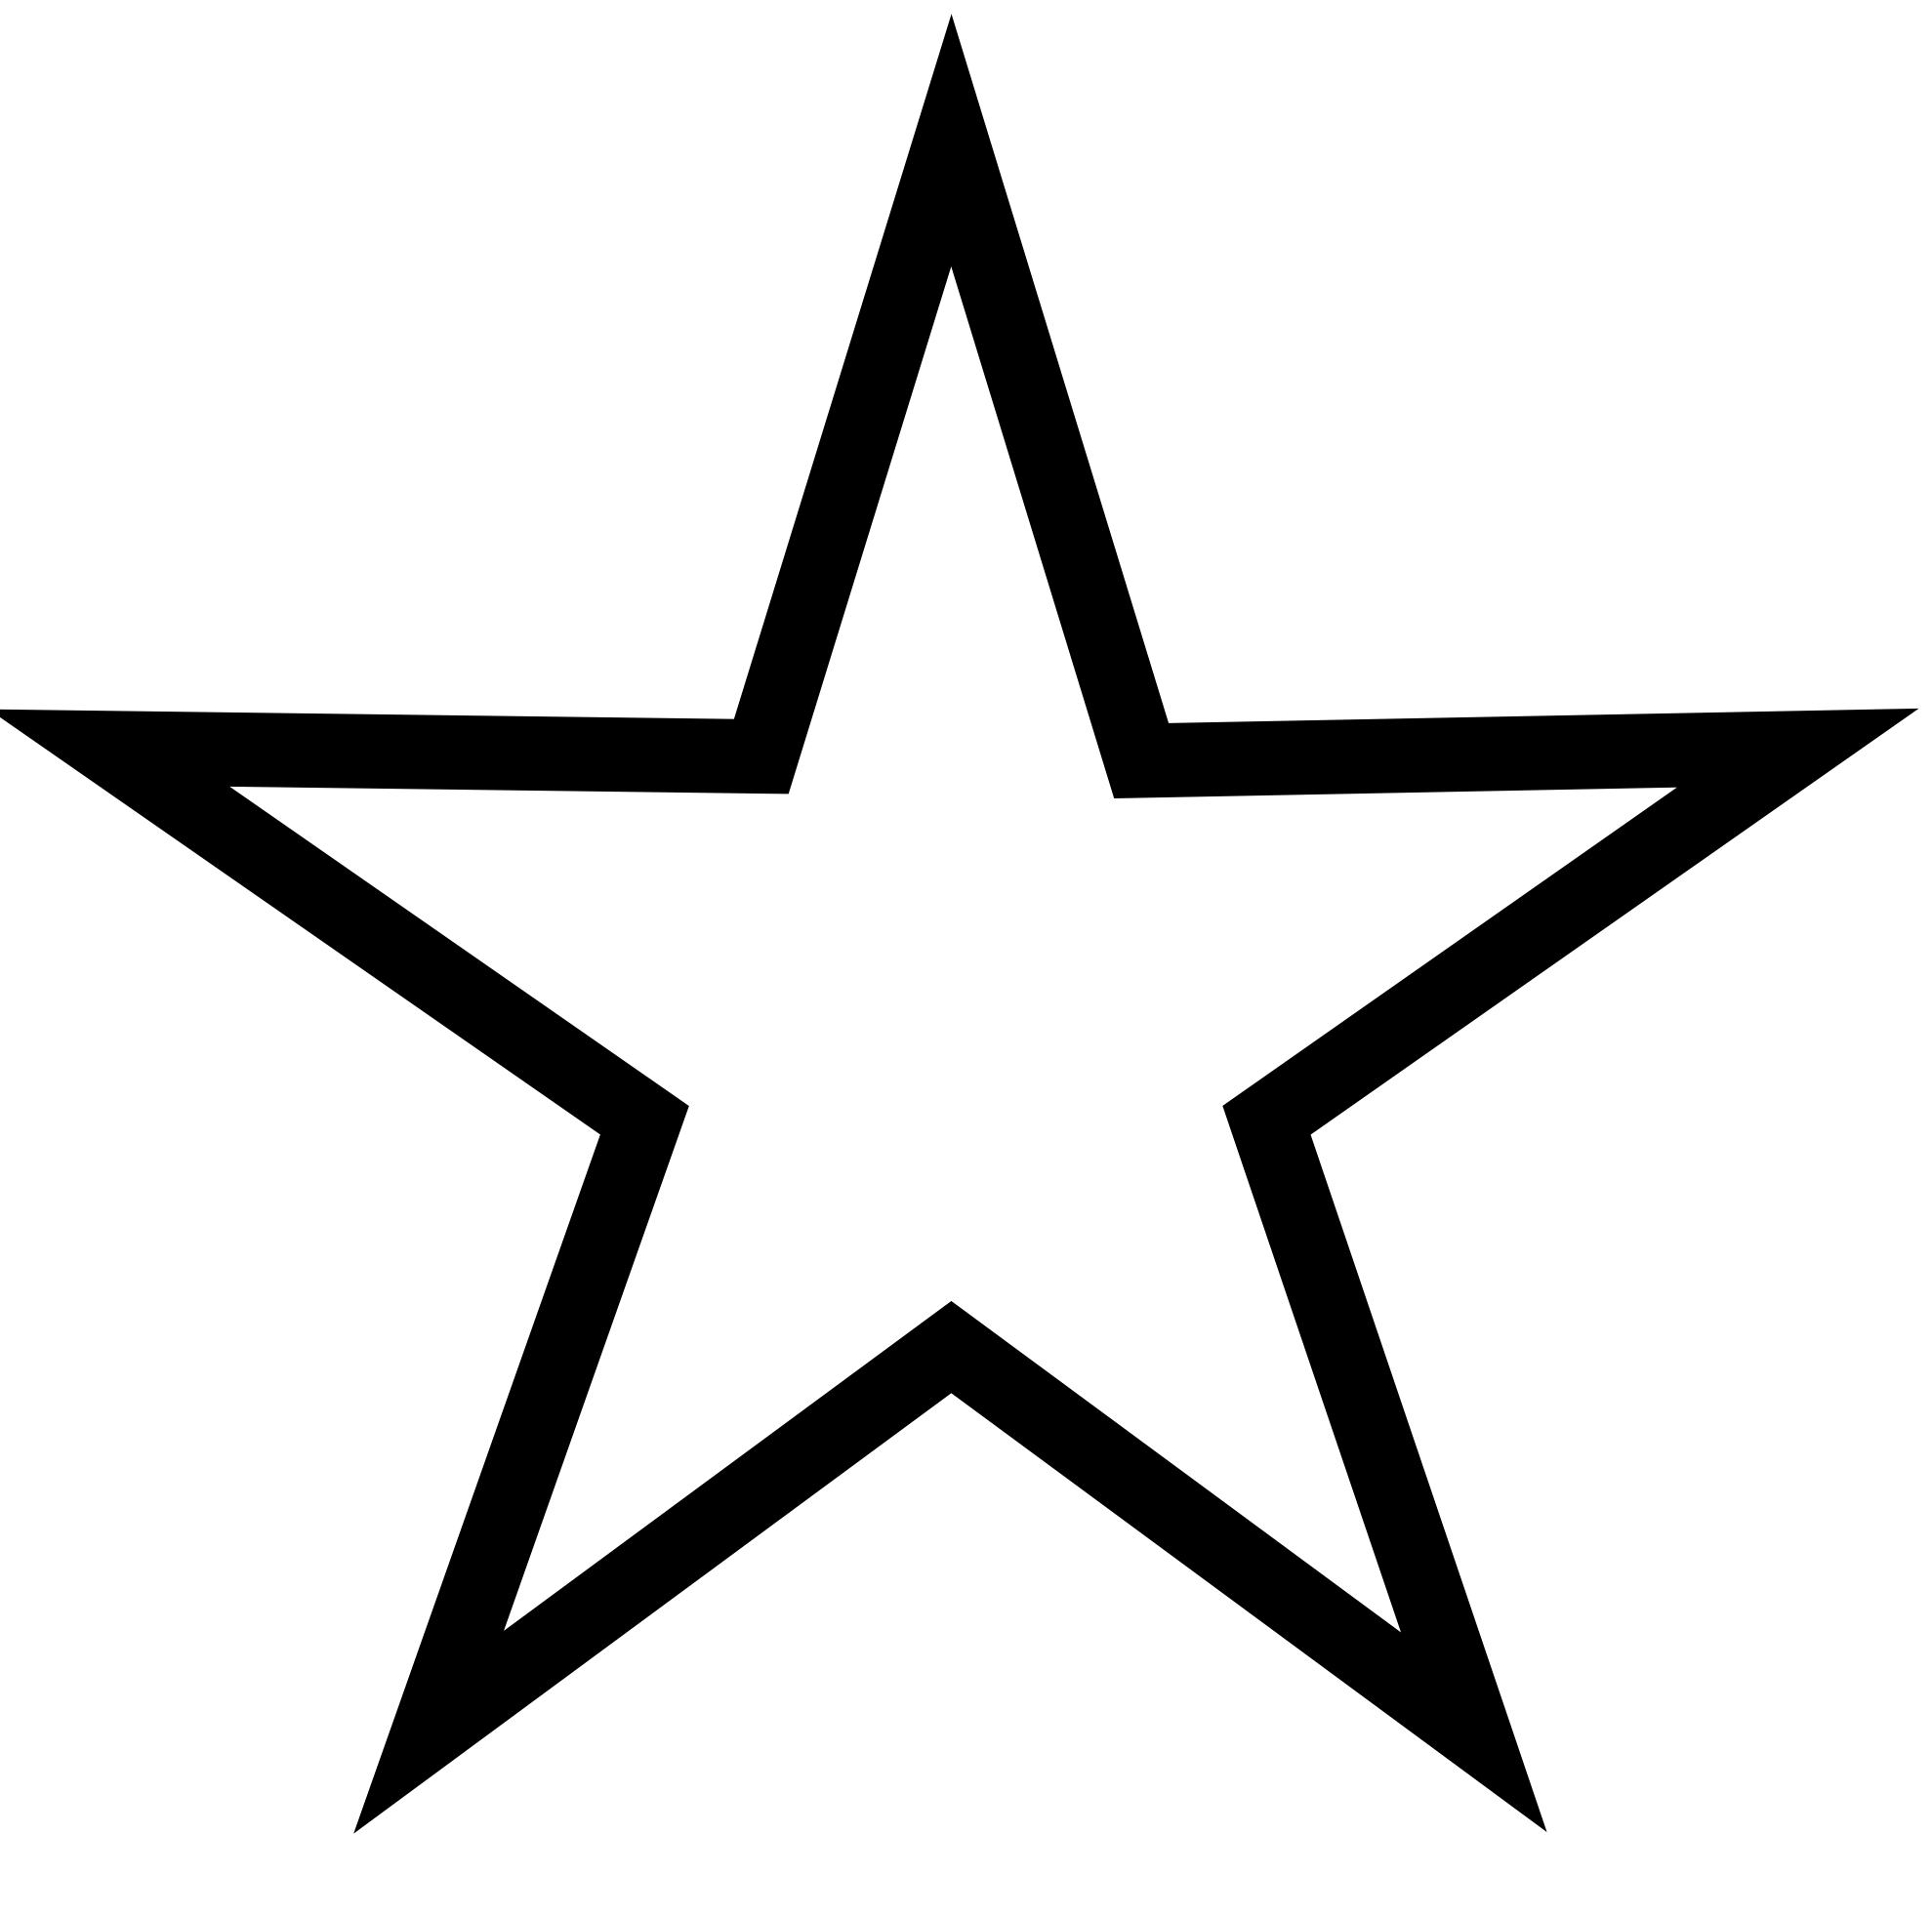 1979x1962 Star Black And White Shooting Star Clip Art Black And White Free